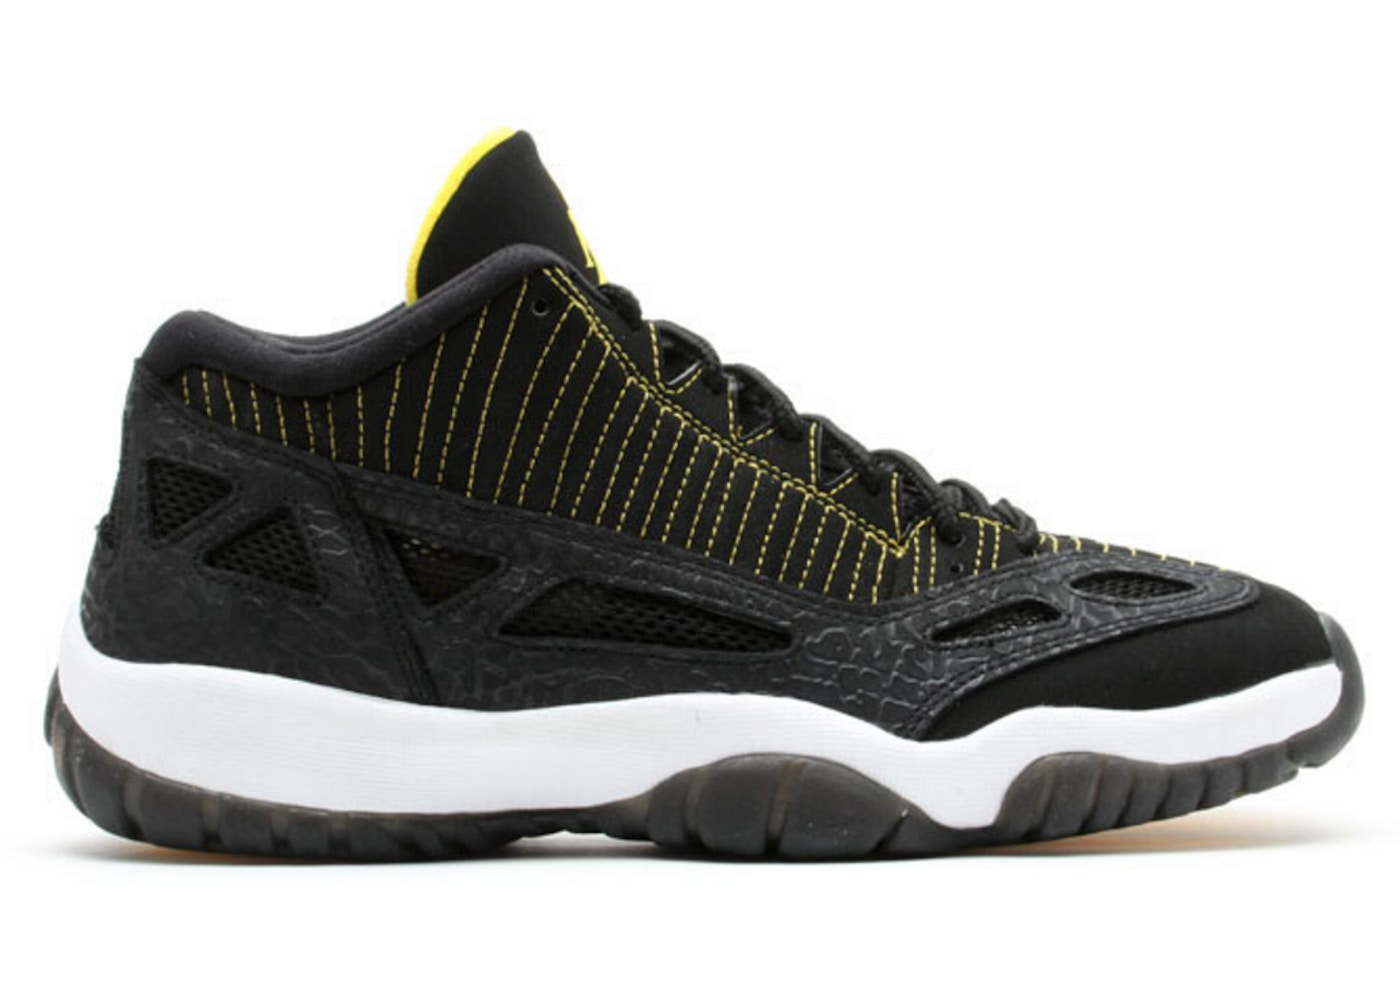 82e6aa8426e Sell. or Ask. Size: 12.5. View All Bids. Jordan 11 Retro Low IE Black Zest